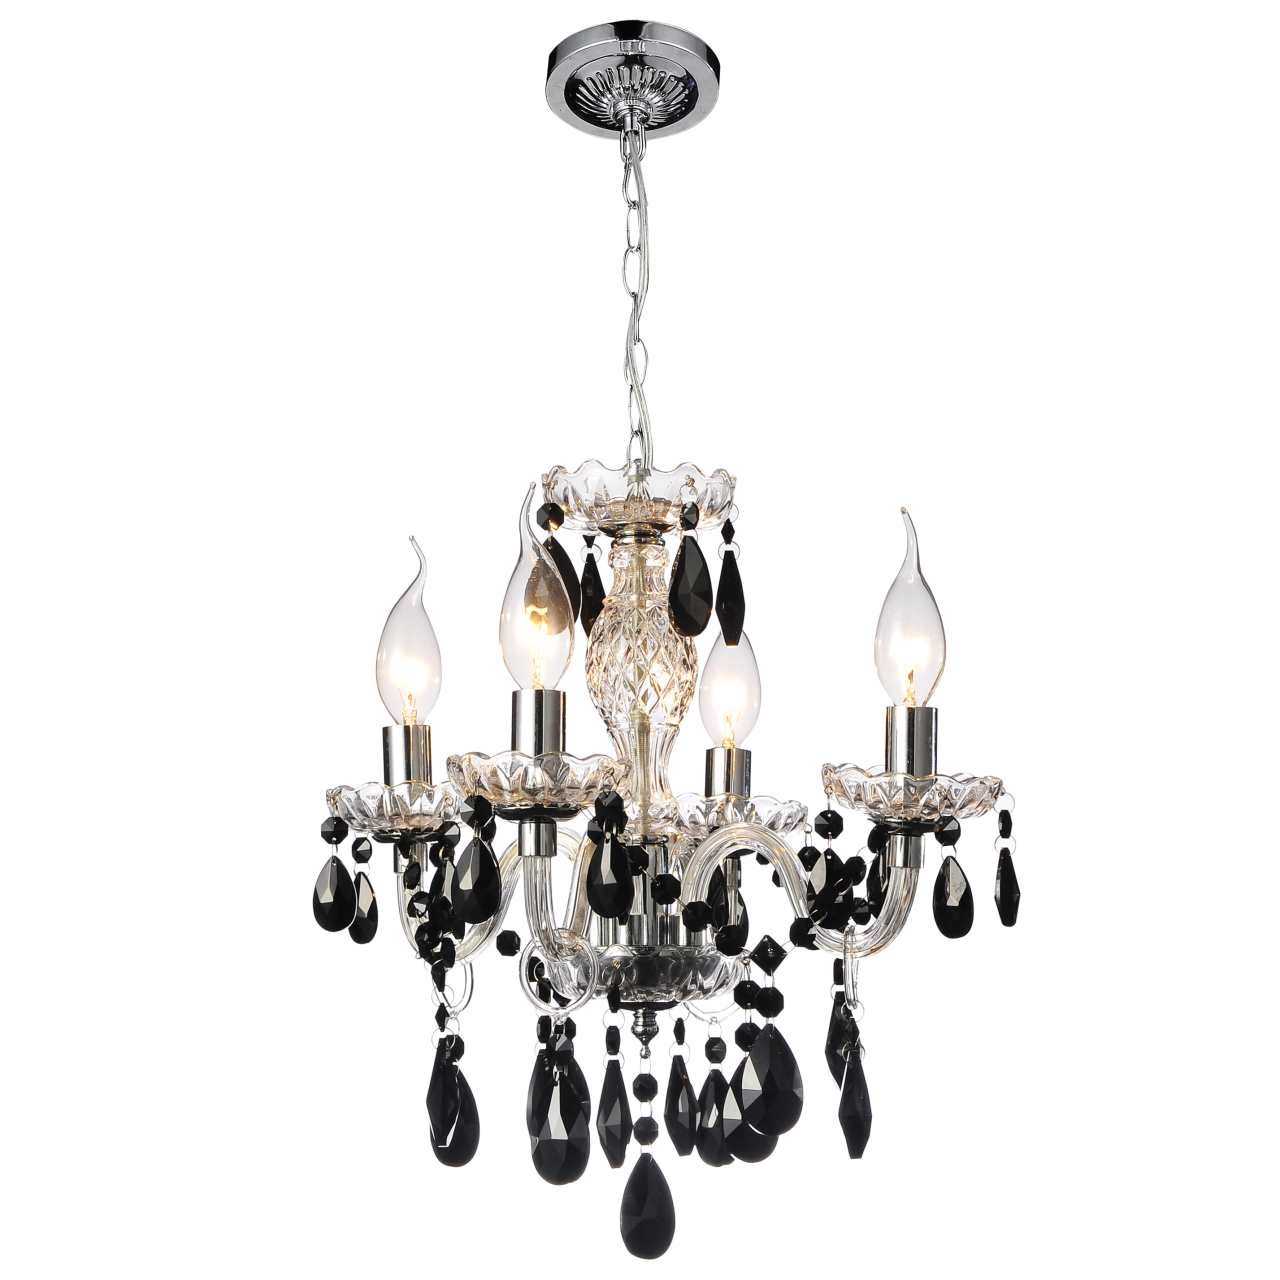 Brizzo Lighting Stores 14 Victorian Traditional Crystal